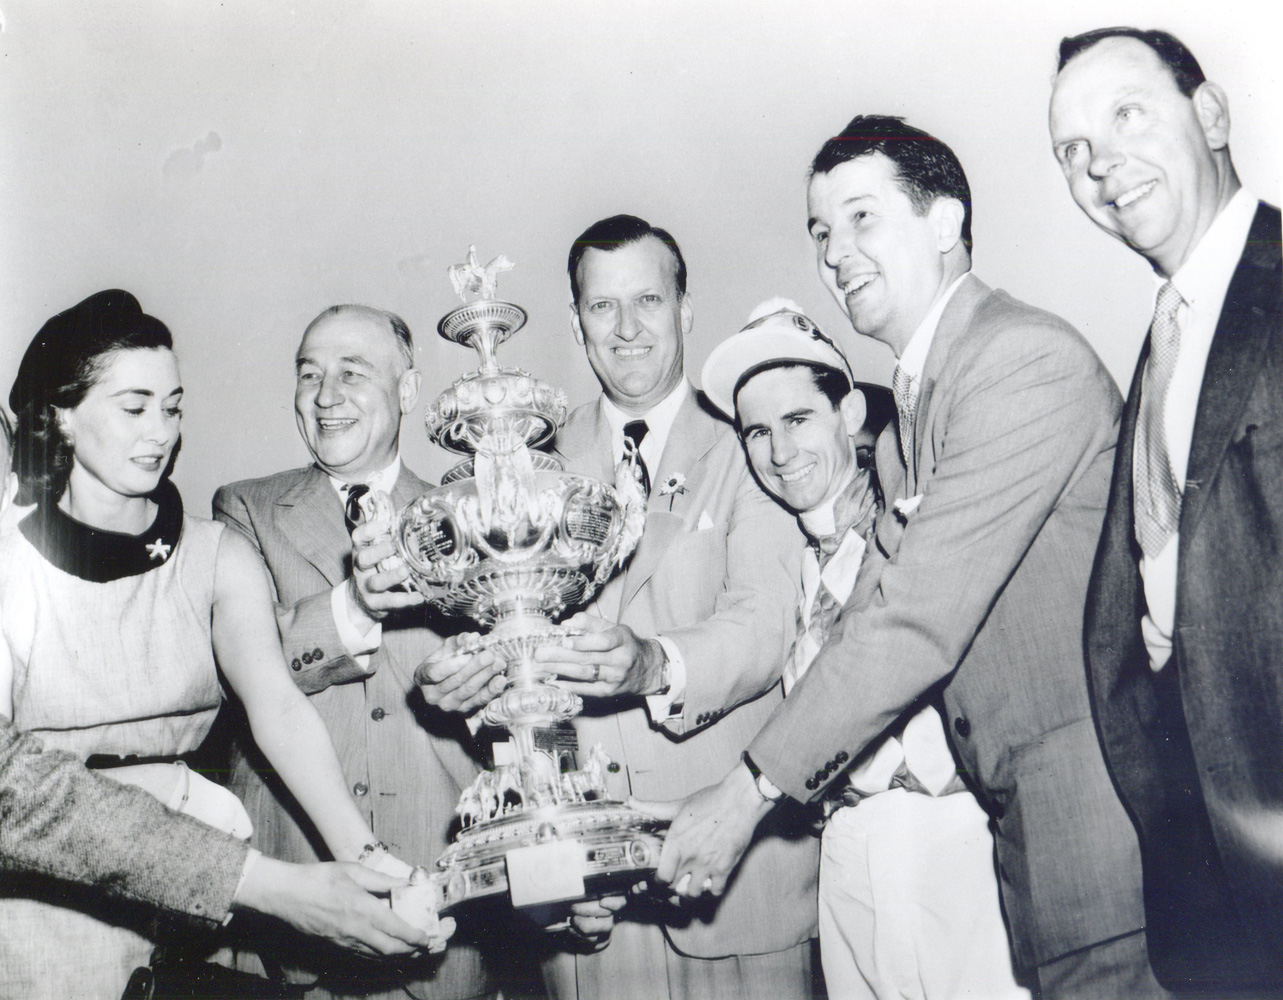 Mr. and Mrs. Alfred G. Vanderbilt, George M. Humphrey, Theodore R. McKeldin, jockey Eric Guerin, and trainer W. C. Winfrey celebrate Native Dancer's win at the 1953 Preakness trophy presentation (Keeneland Library Morgan Collection/Museum Collection)